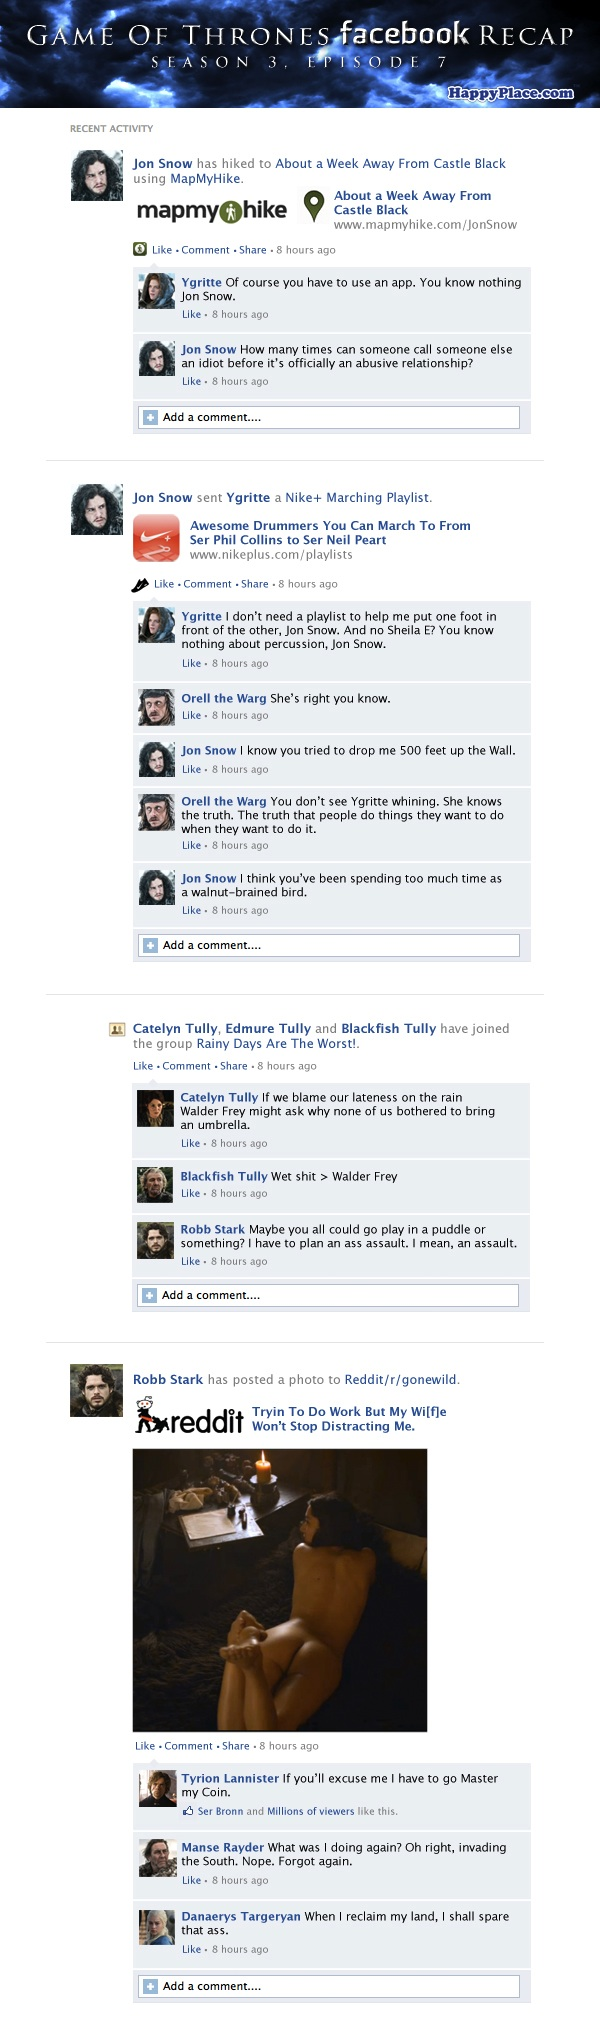 If Game Of Thrones took place entirely on Facebook: Season 3, Episode 7.